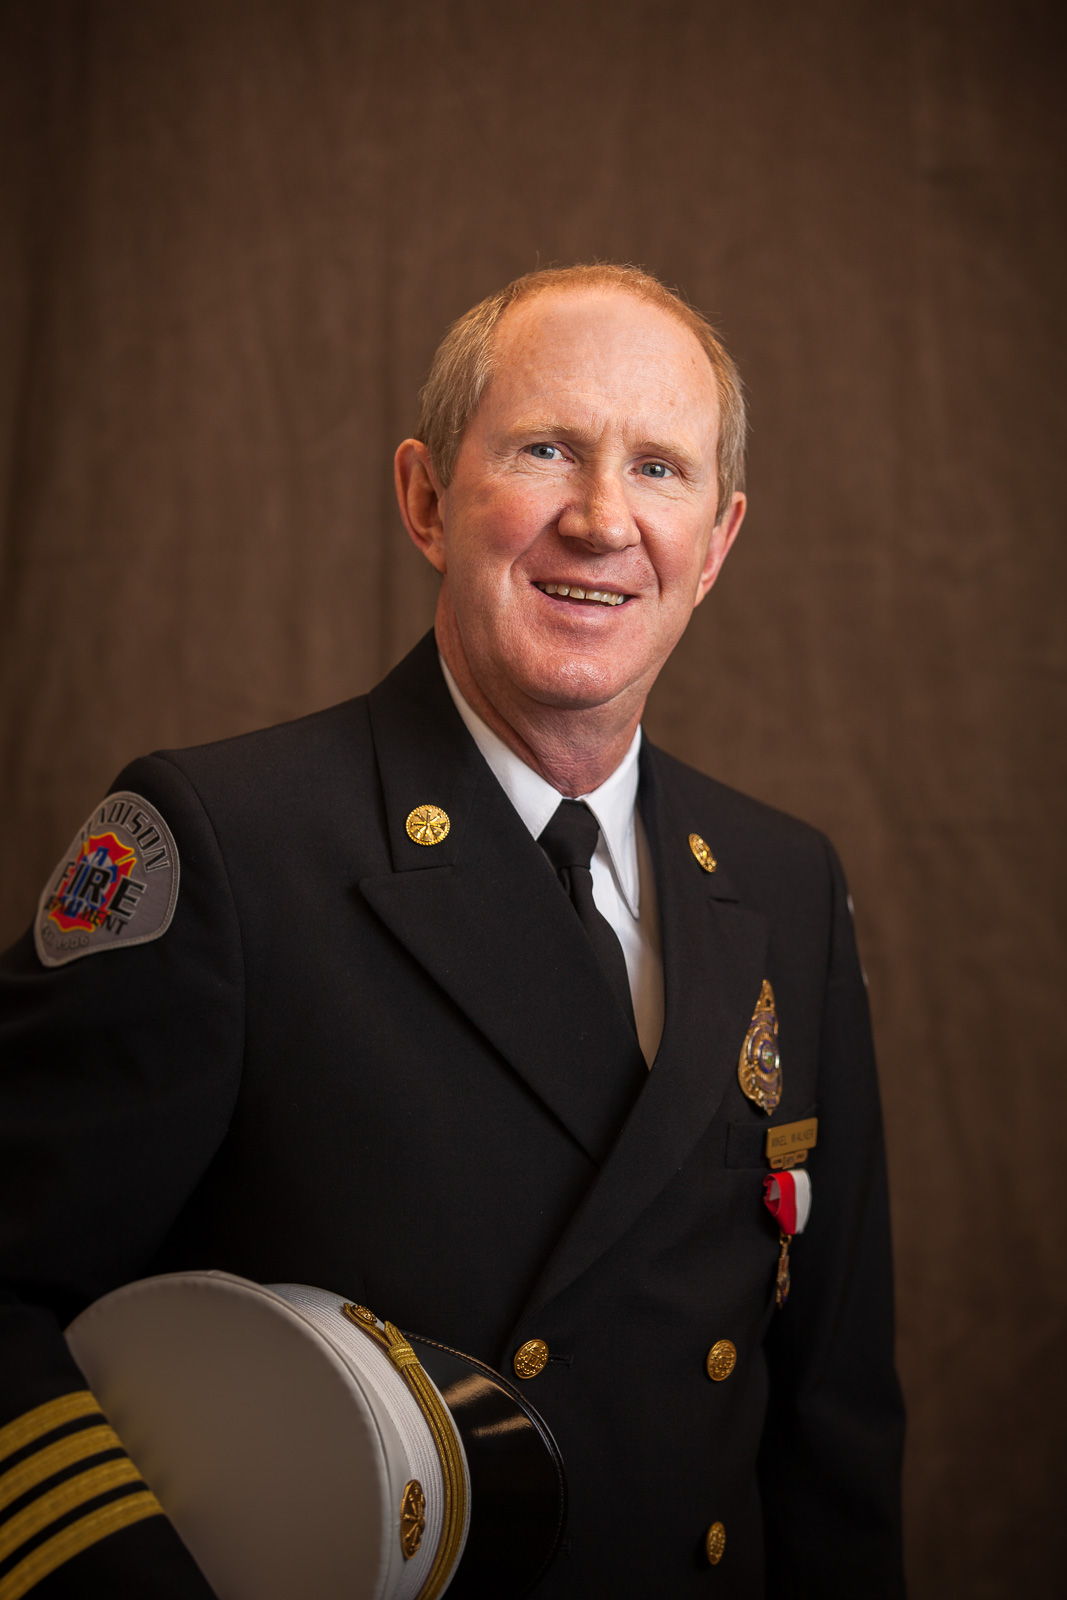 After 38 Years of Service, Assistant Chief Retires at Fire Department